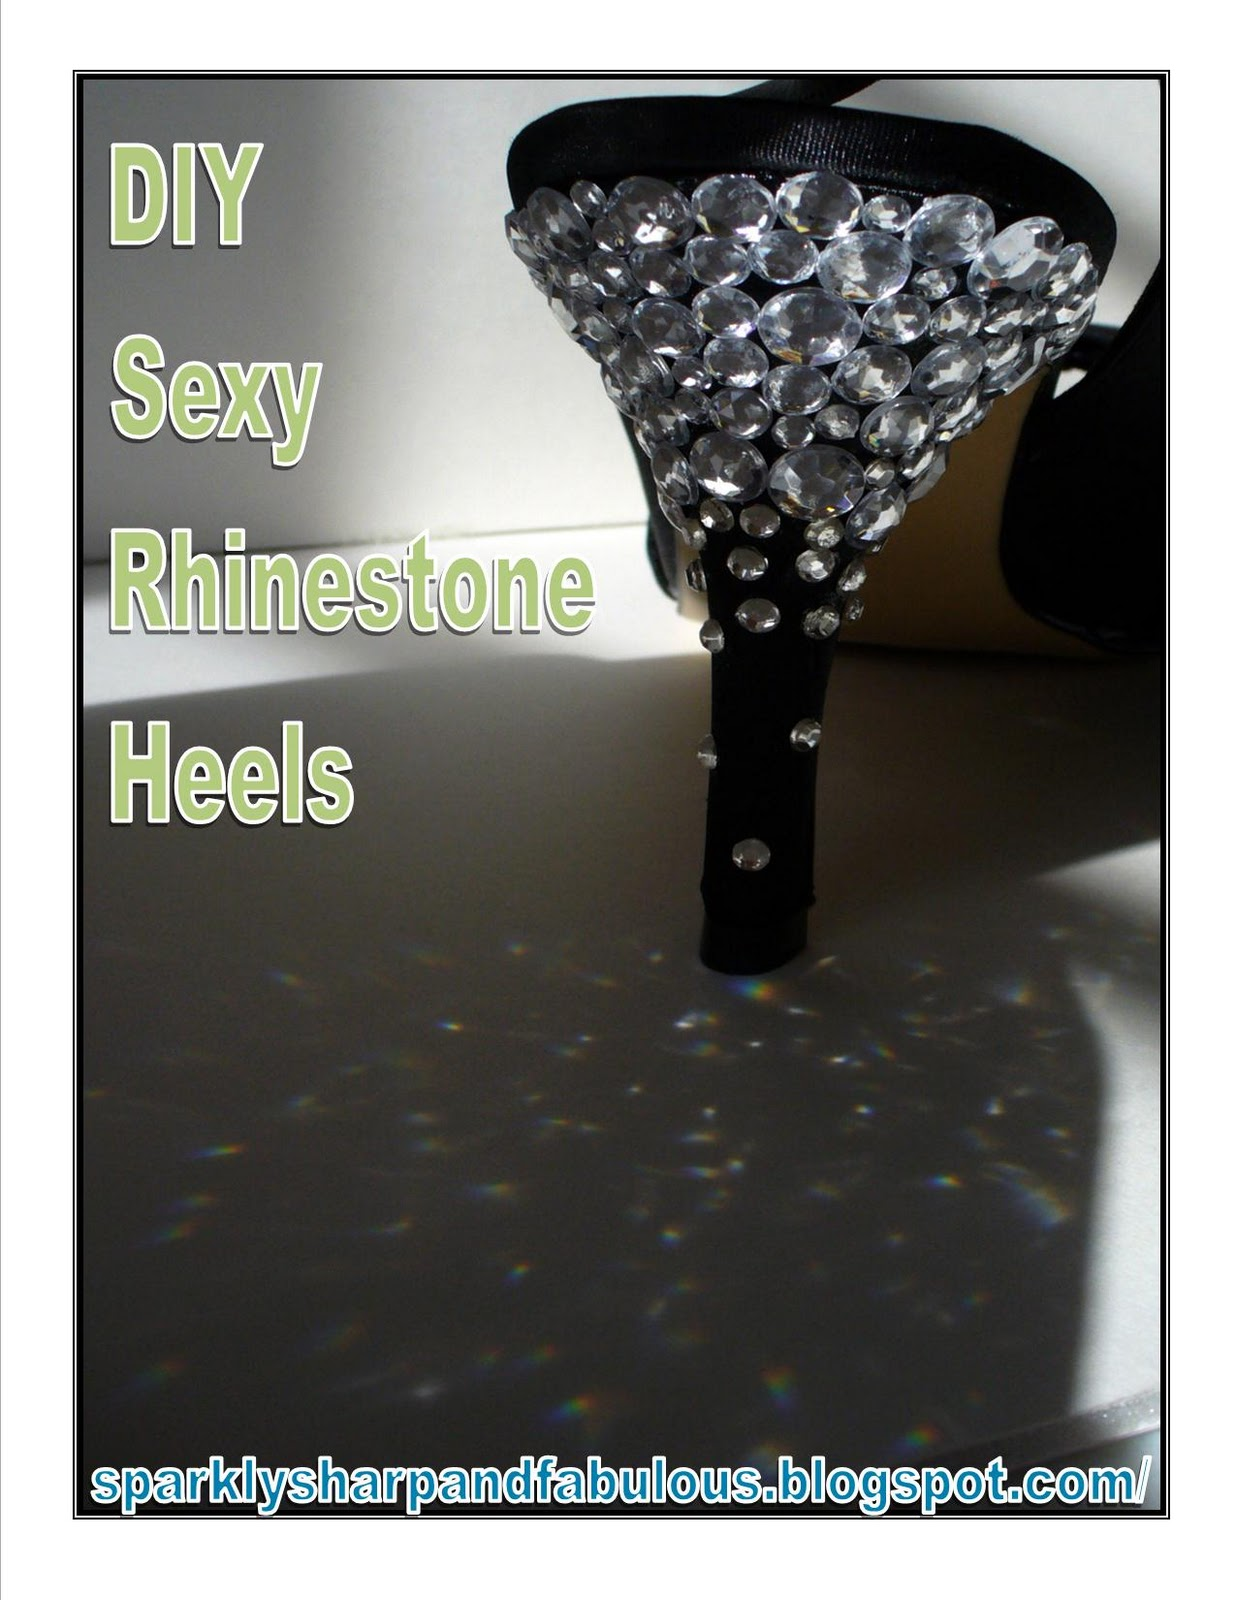 DIY Sexy Rhinestone Heels - A Sparkly Life for Me